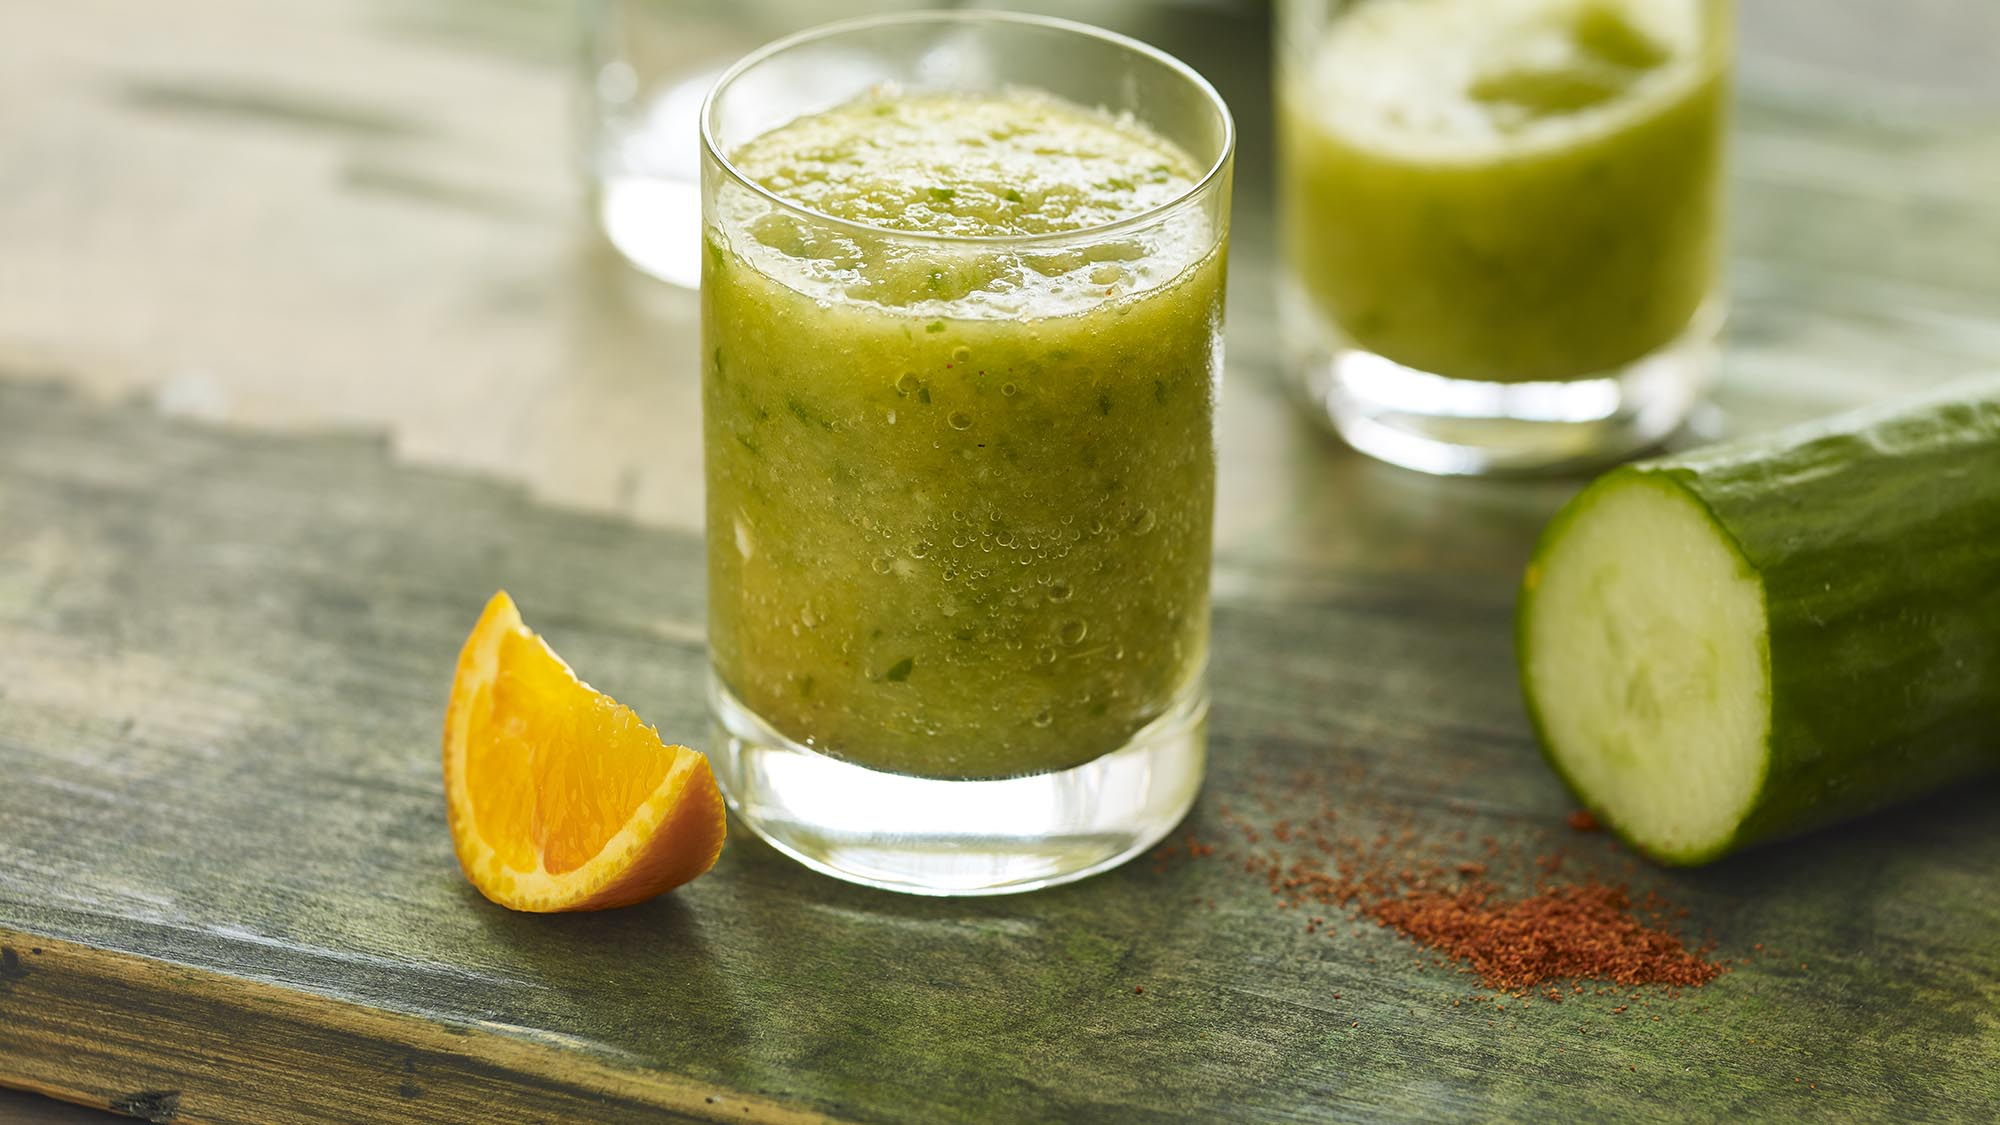 McCormick Spiced Cucumber and Apple Morning Juice